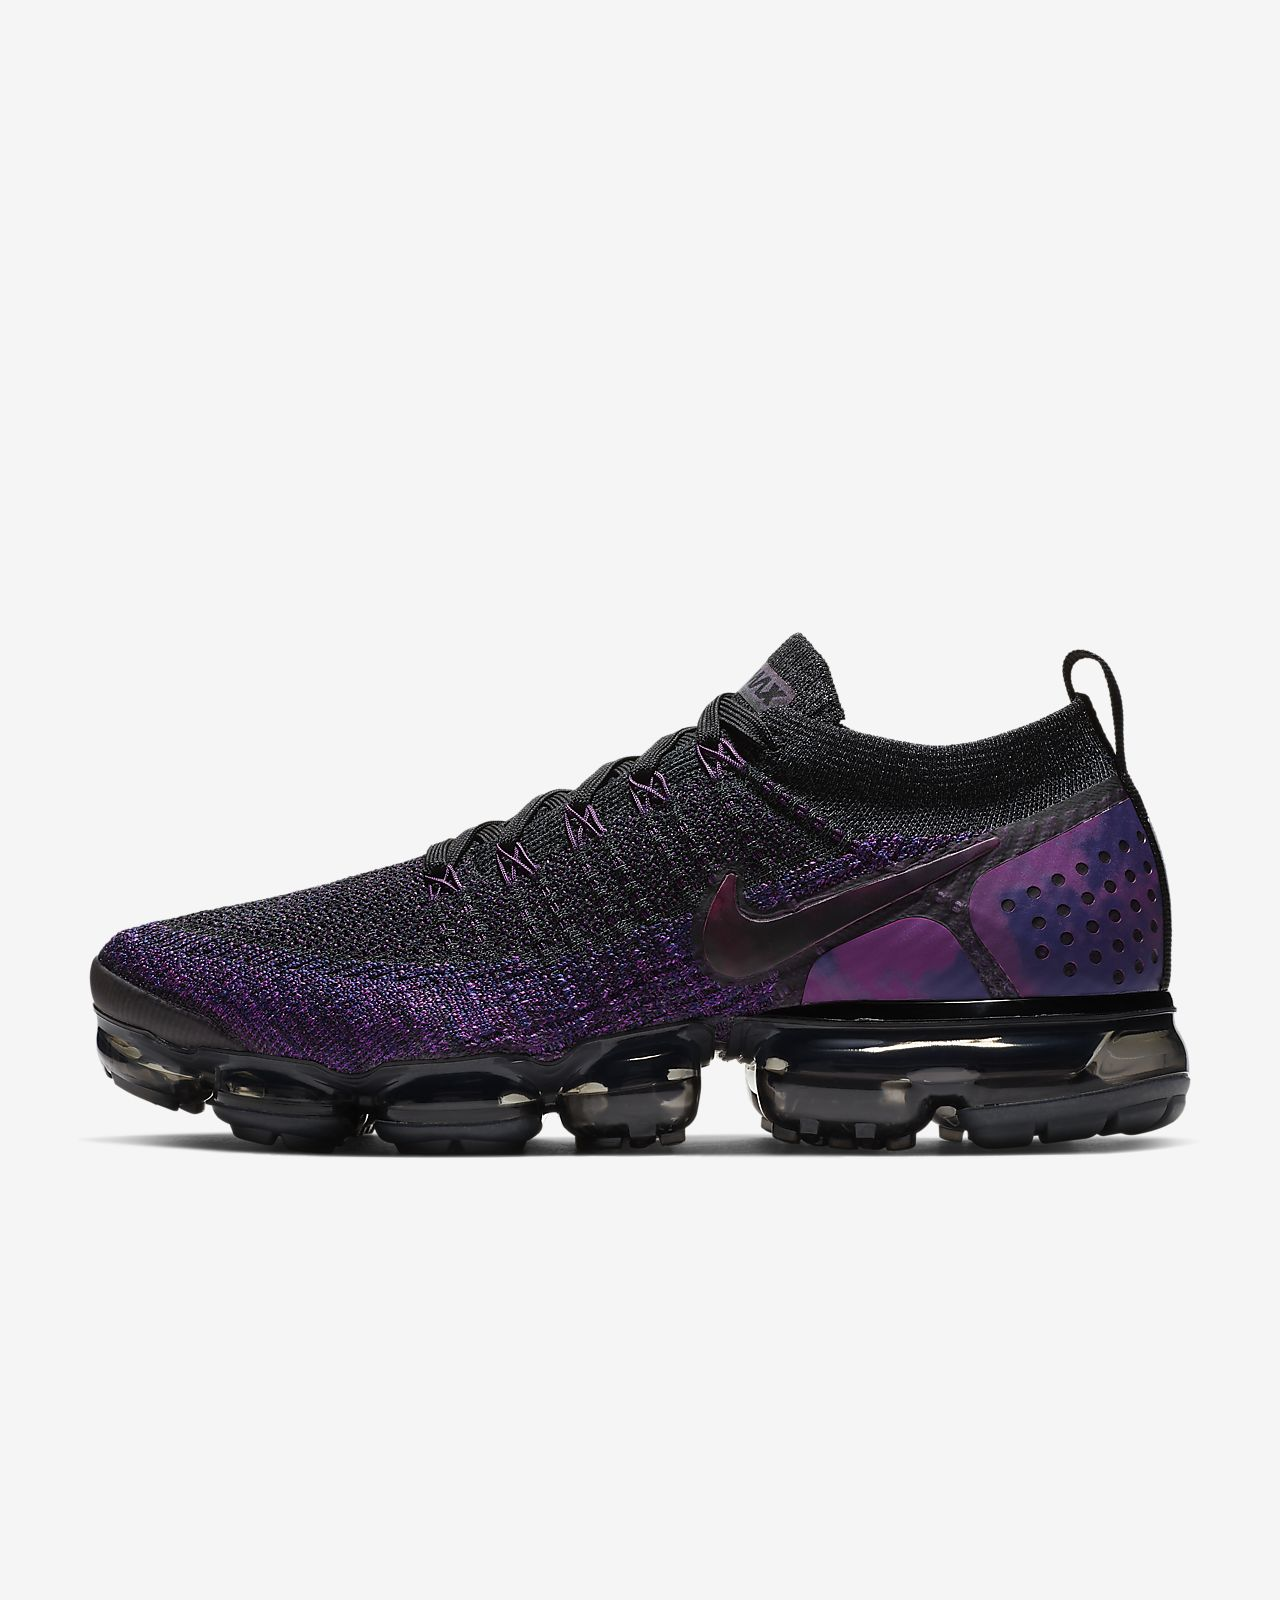 Air Nike Pour Flyknit 2 Chaussure Vapormax Homme Ca 7awBq6w